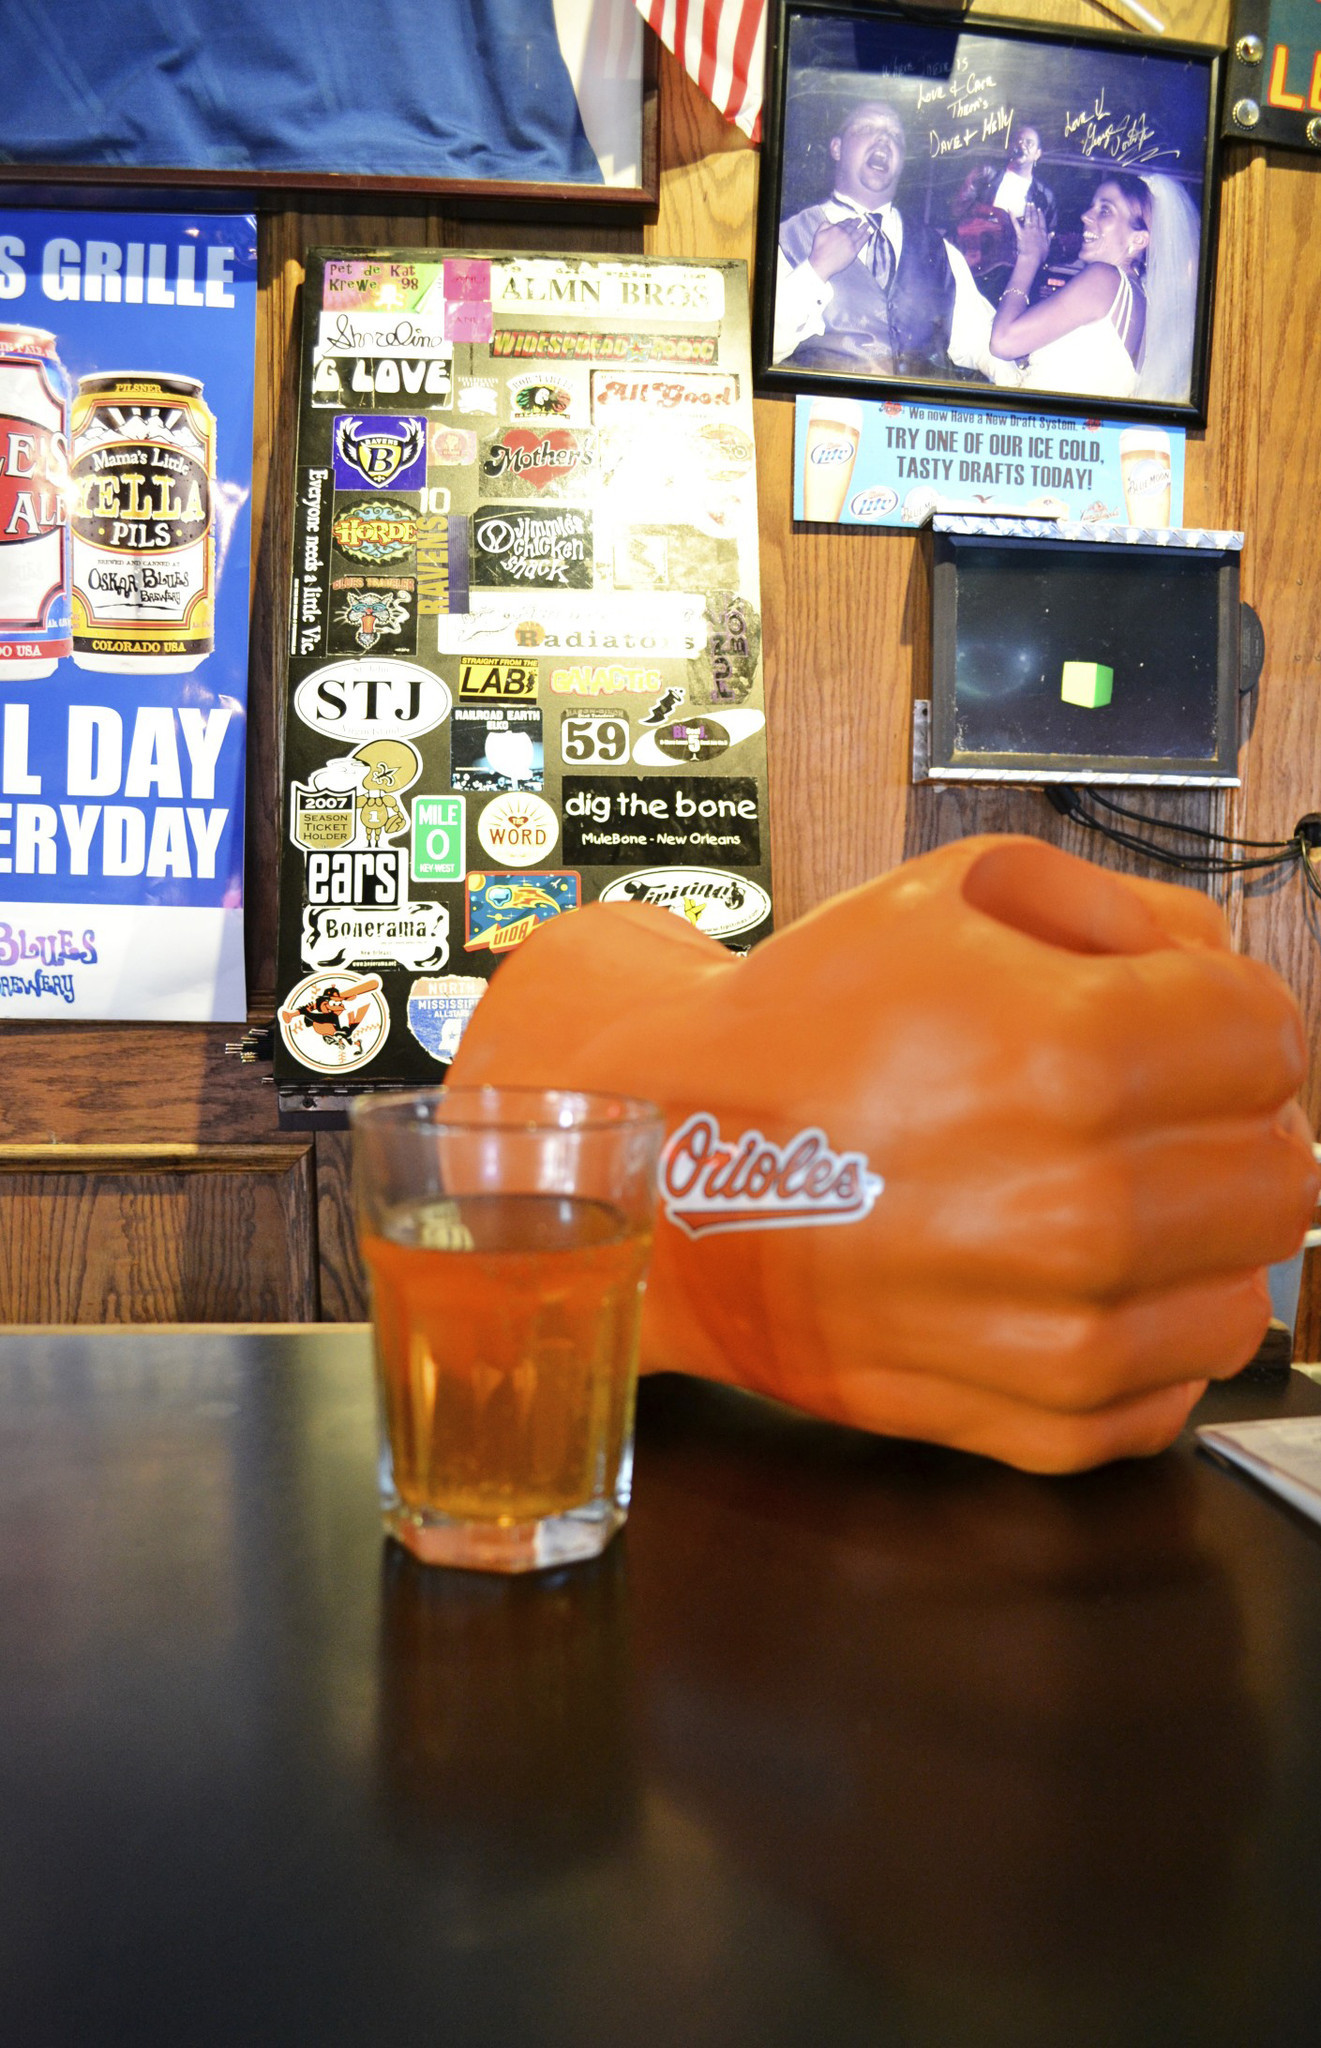 Orioles cocktails at Baltimore bars [Pictures] - Orioles Magic Bomb at Mother